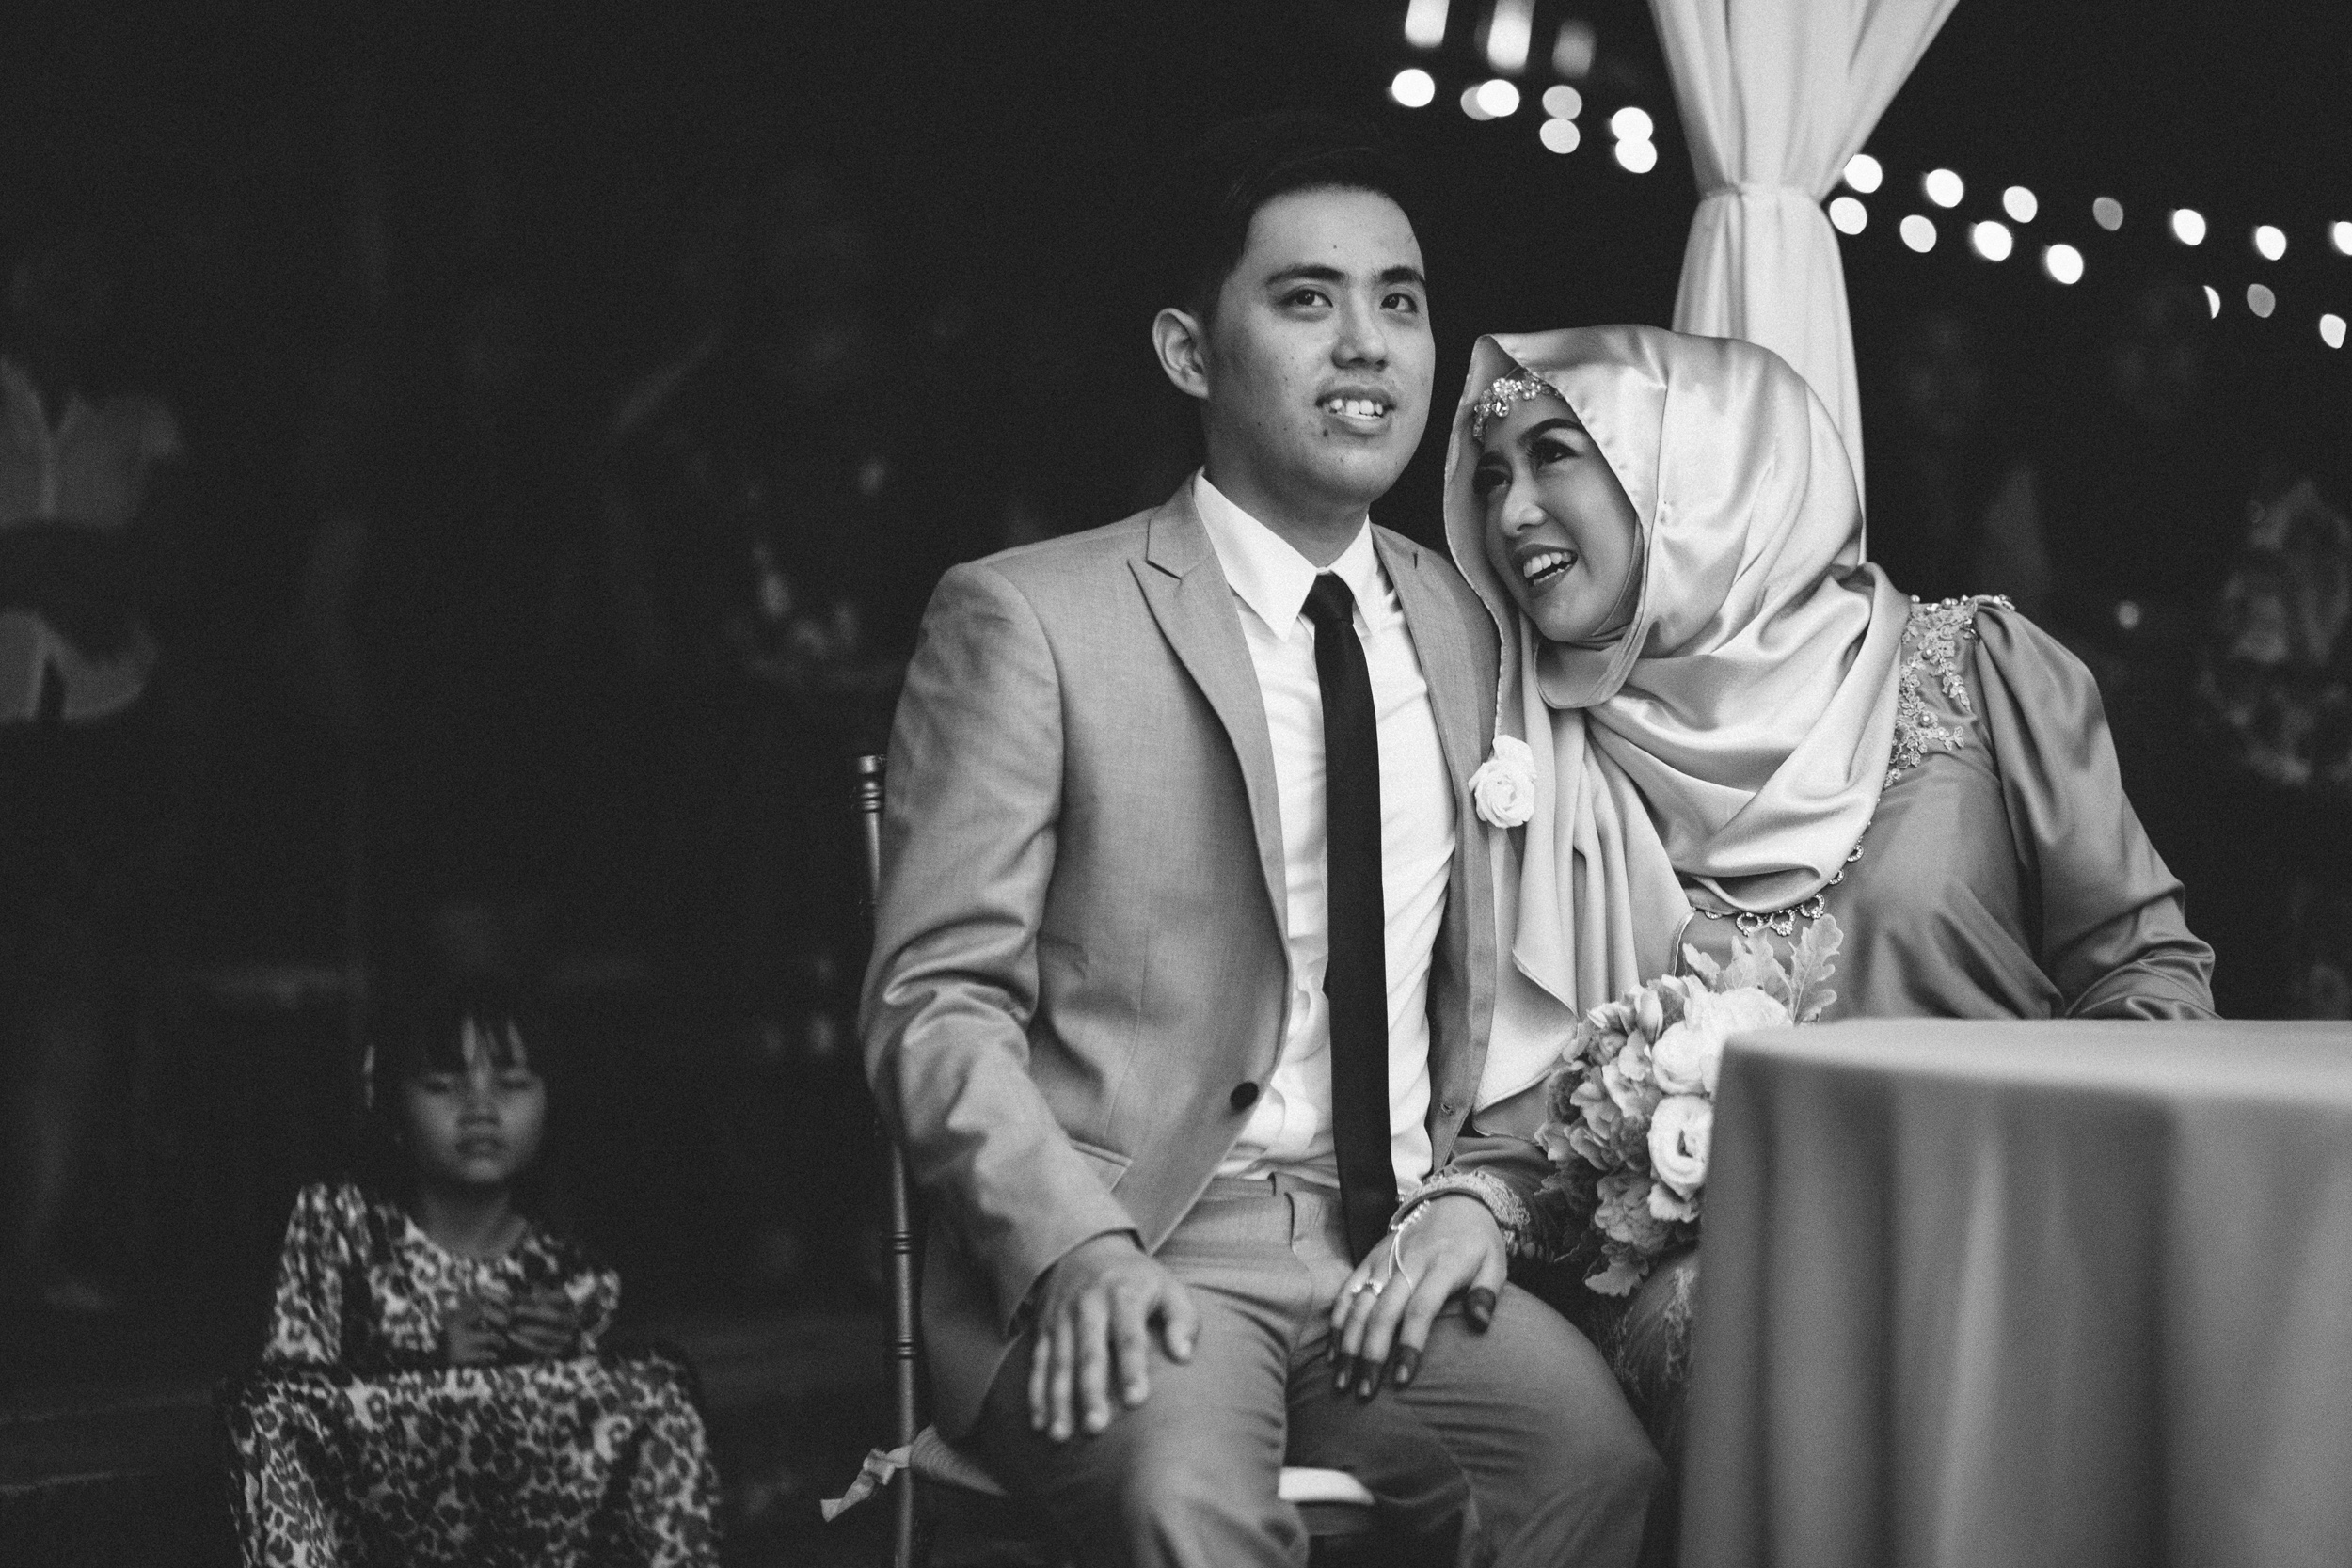 singapore-wedding-photographer-wemadethese-aisyah-helmi-72.jpg